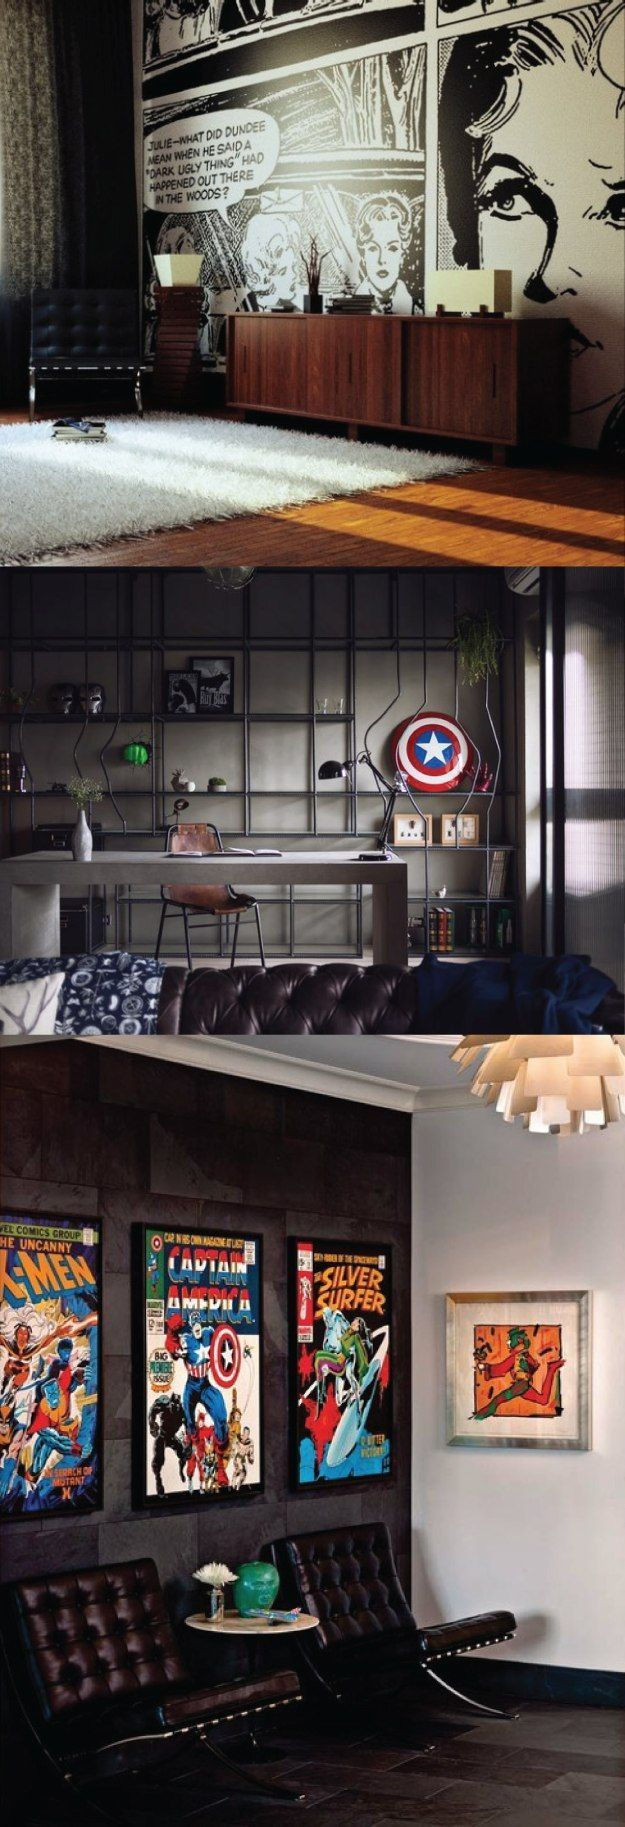 Man Cave On Facebook : Best images about man cave inspiration on pinterest